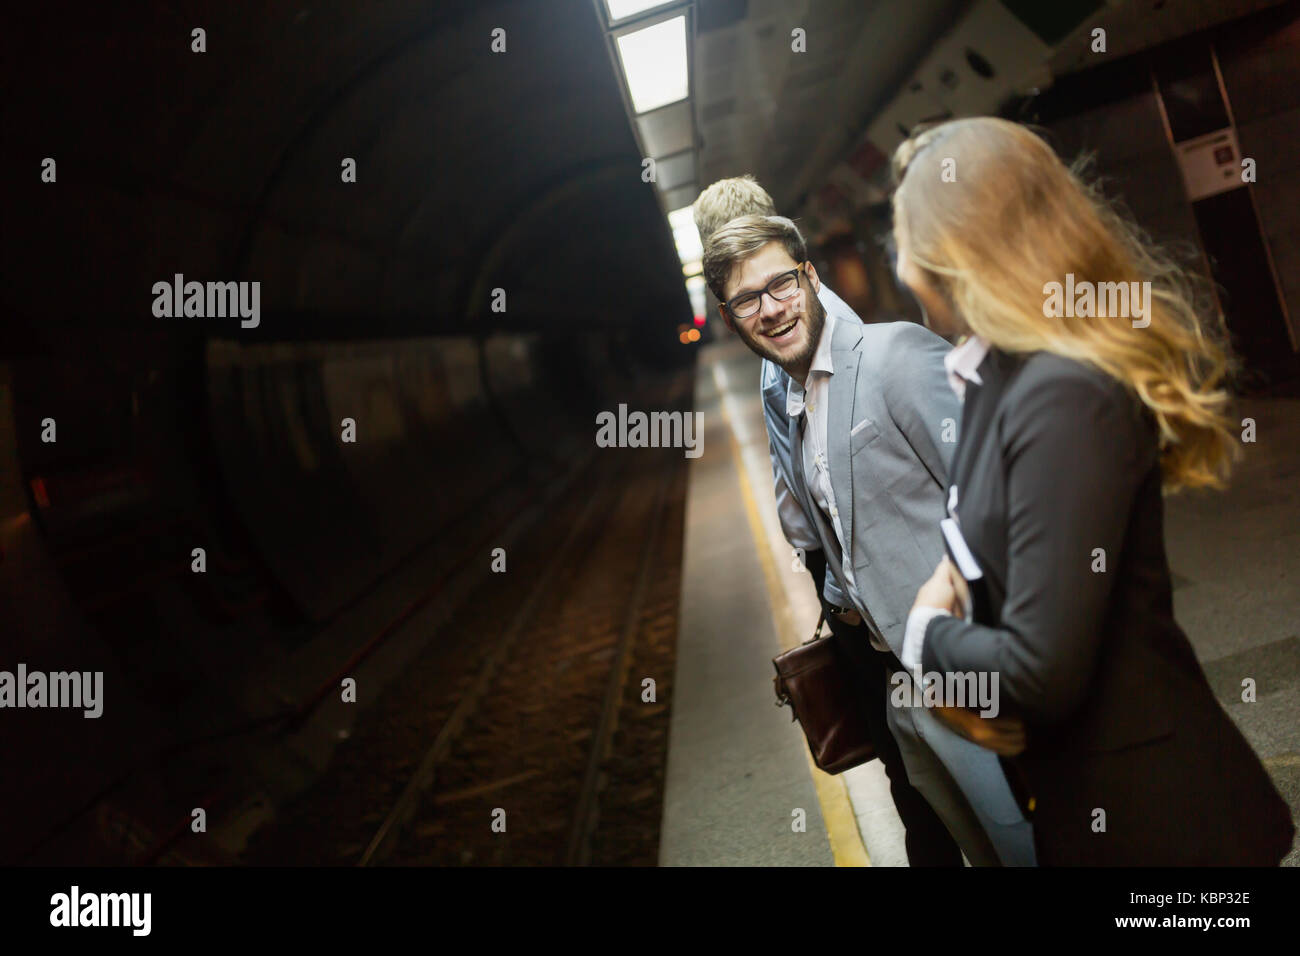 Business people waiting for subway - Stock Image